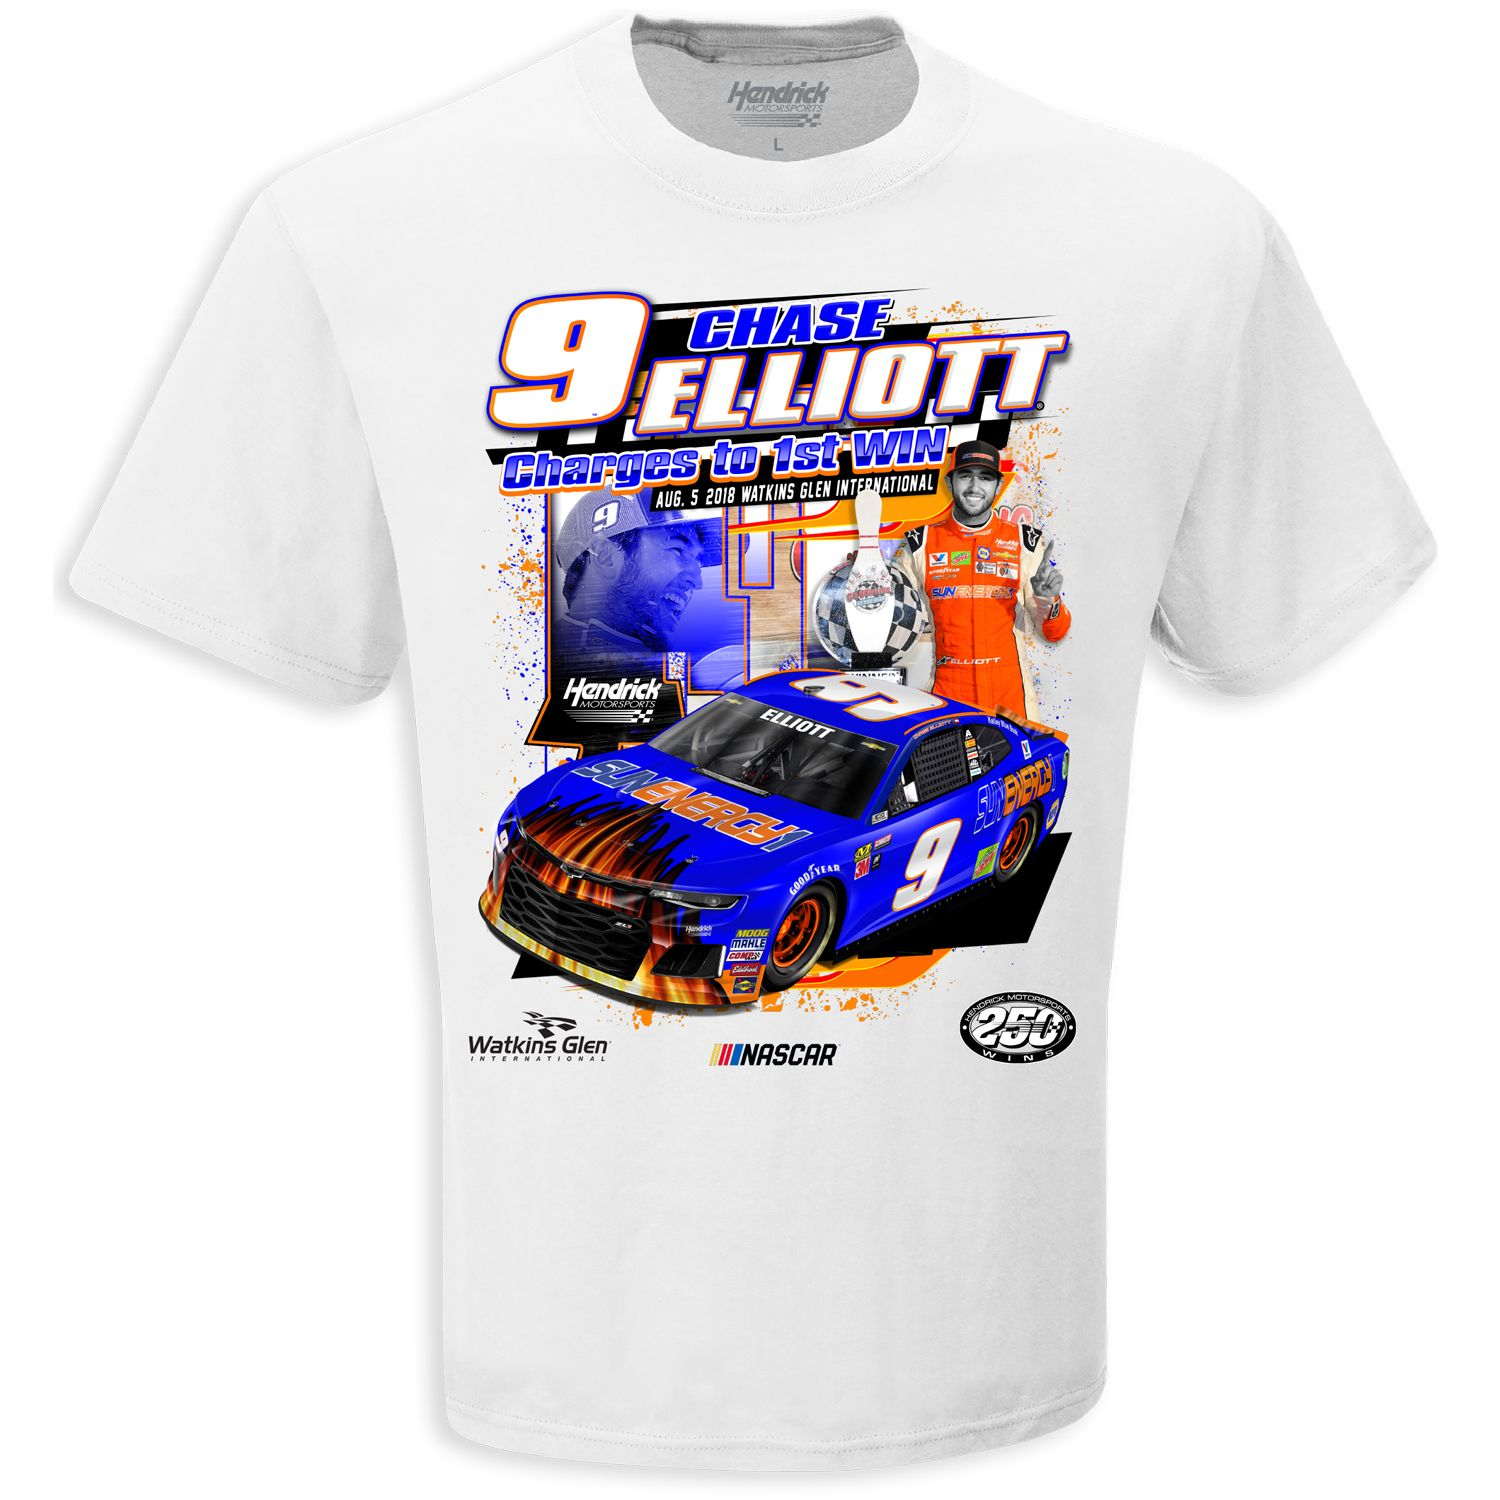 Chase Elliott T Shirt >> Chase Elliott 9 First Win On A White Extra Large Xl Tee